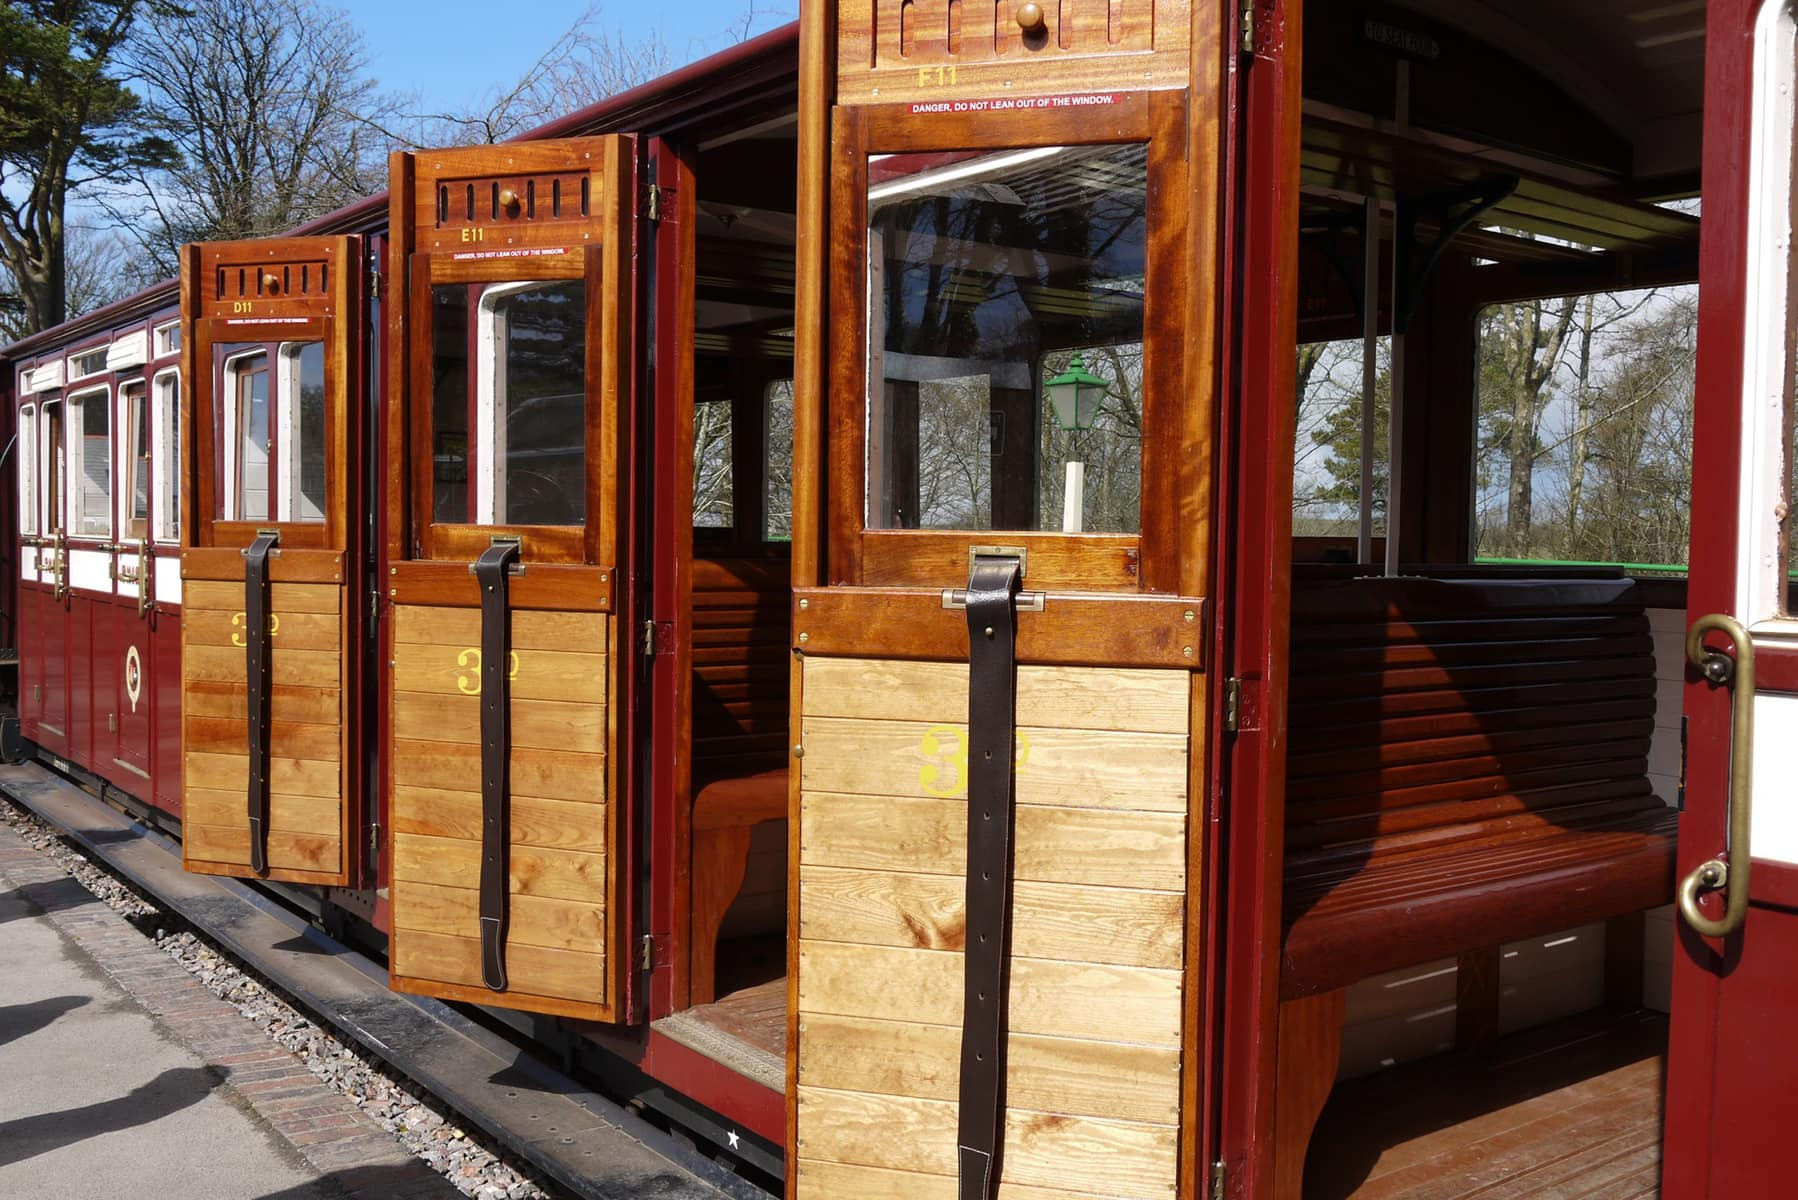 woody-bay-carriages